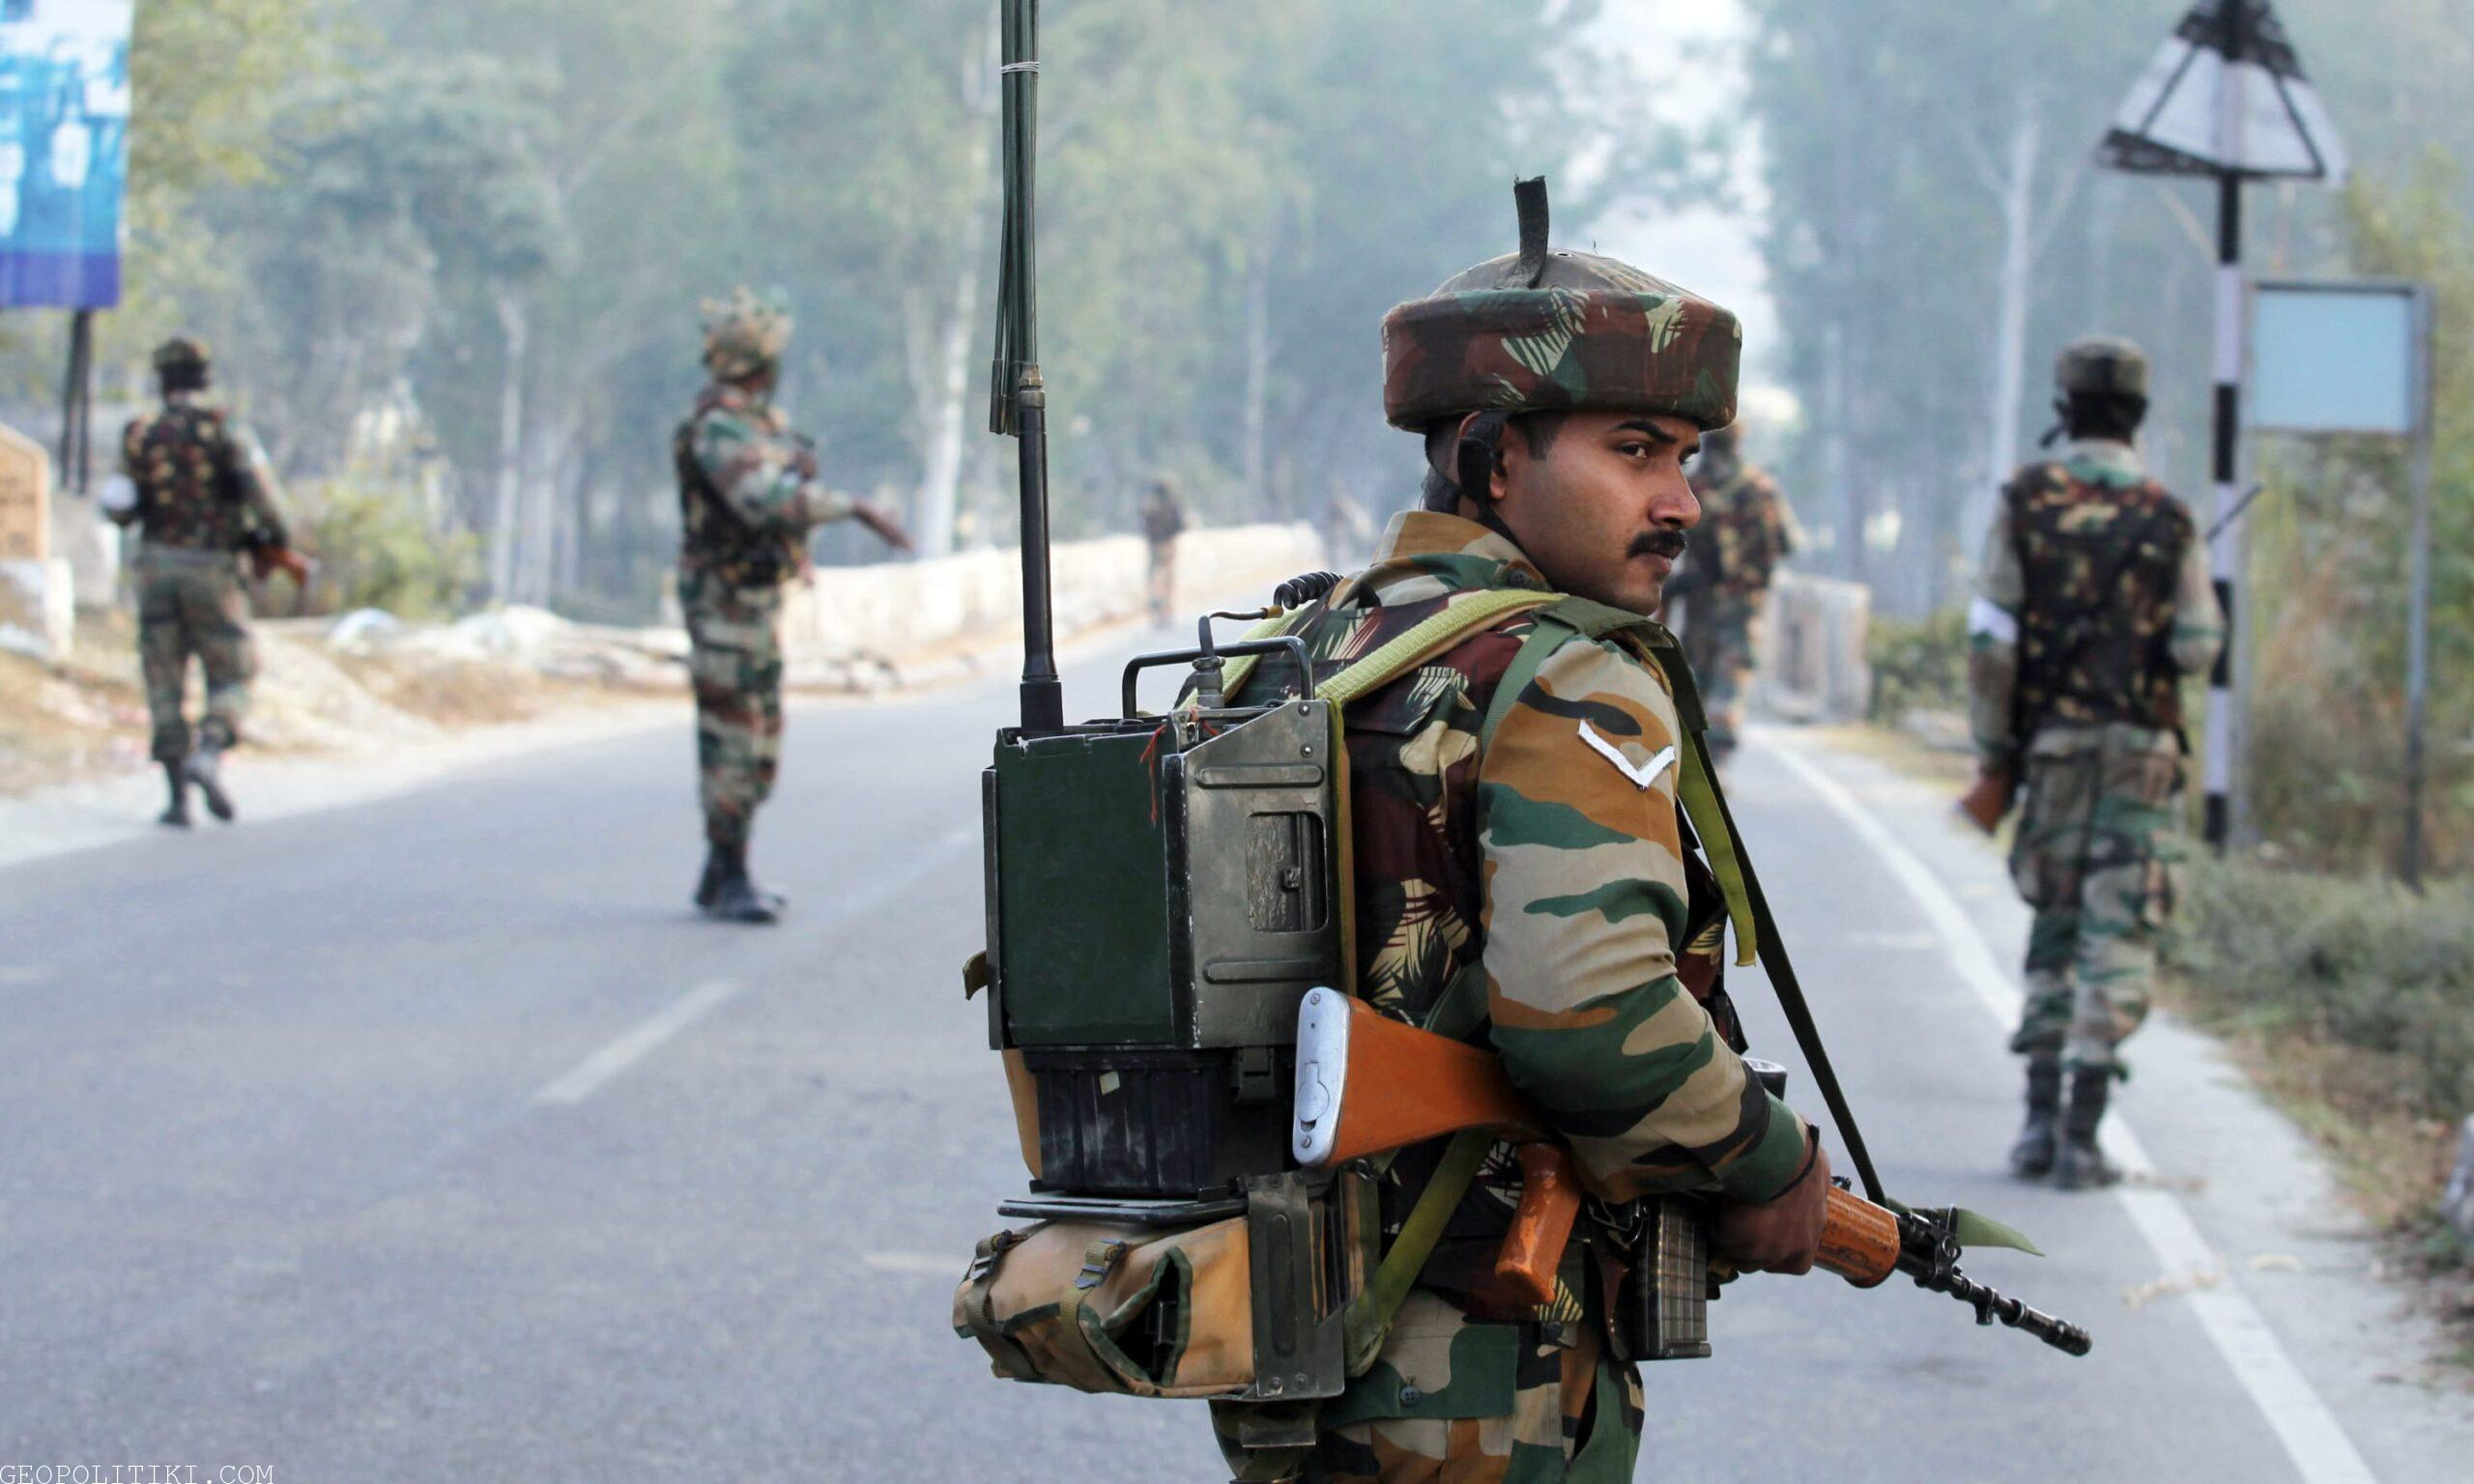 Border skrimish between India & Pakistan – India records one casualty